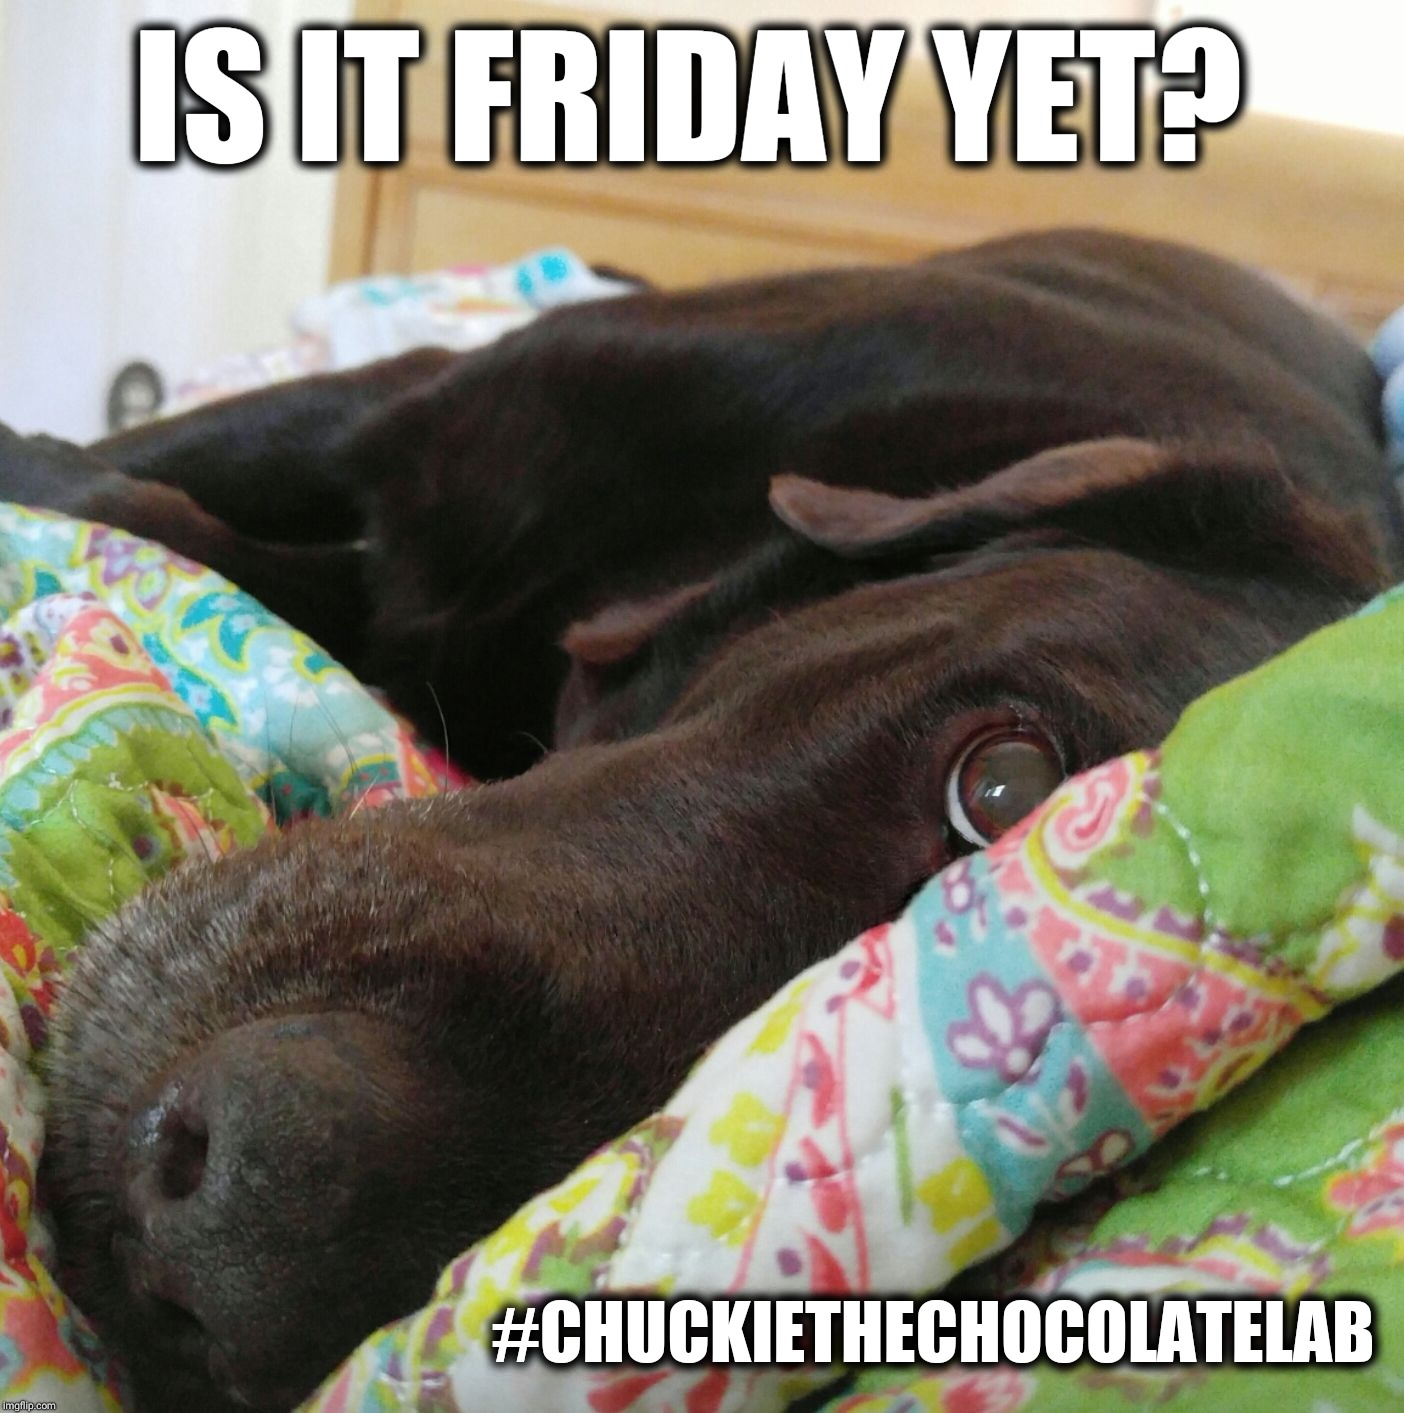 Is it Friday yet?  | IS IT FRIDAY YET? #CHUCKIETHECHOCOLATELAB | image tagged in chuckie the chocolate lab teamchuckie,friday,dogs,cute,memes,dog | made w/ Imgflip meme maker